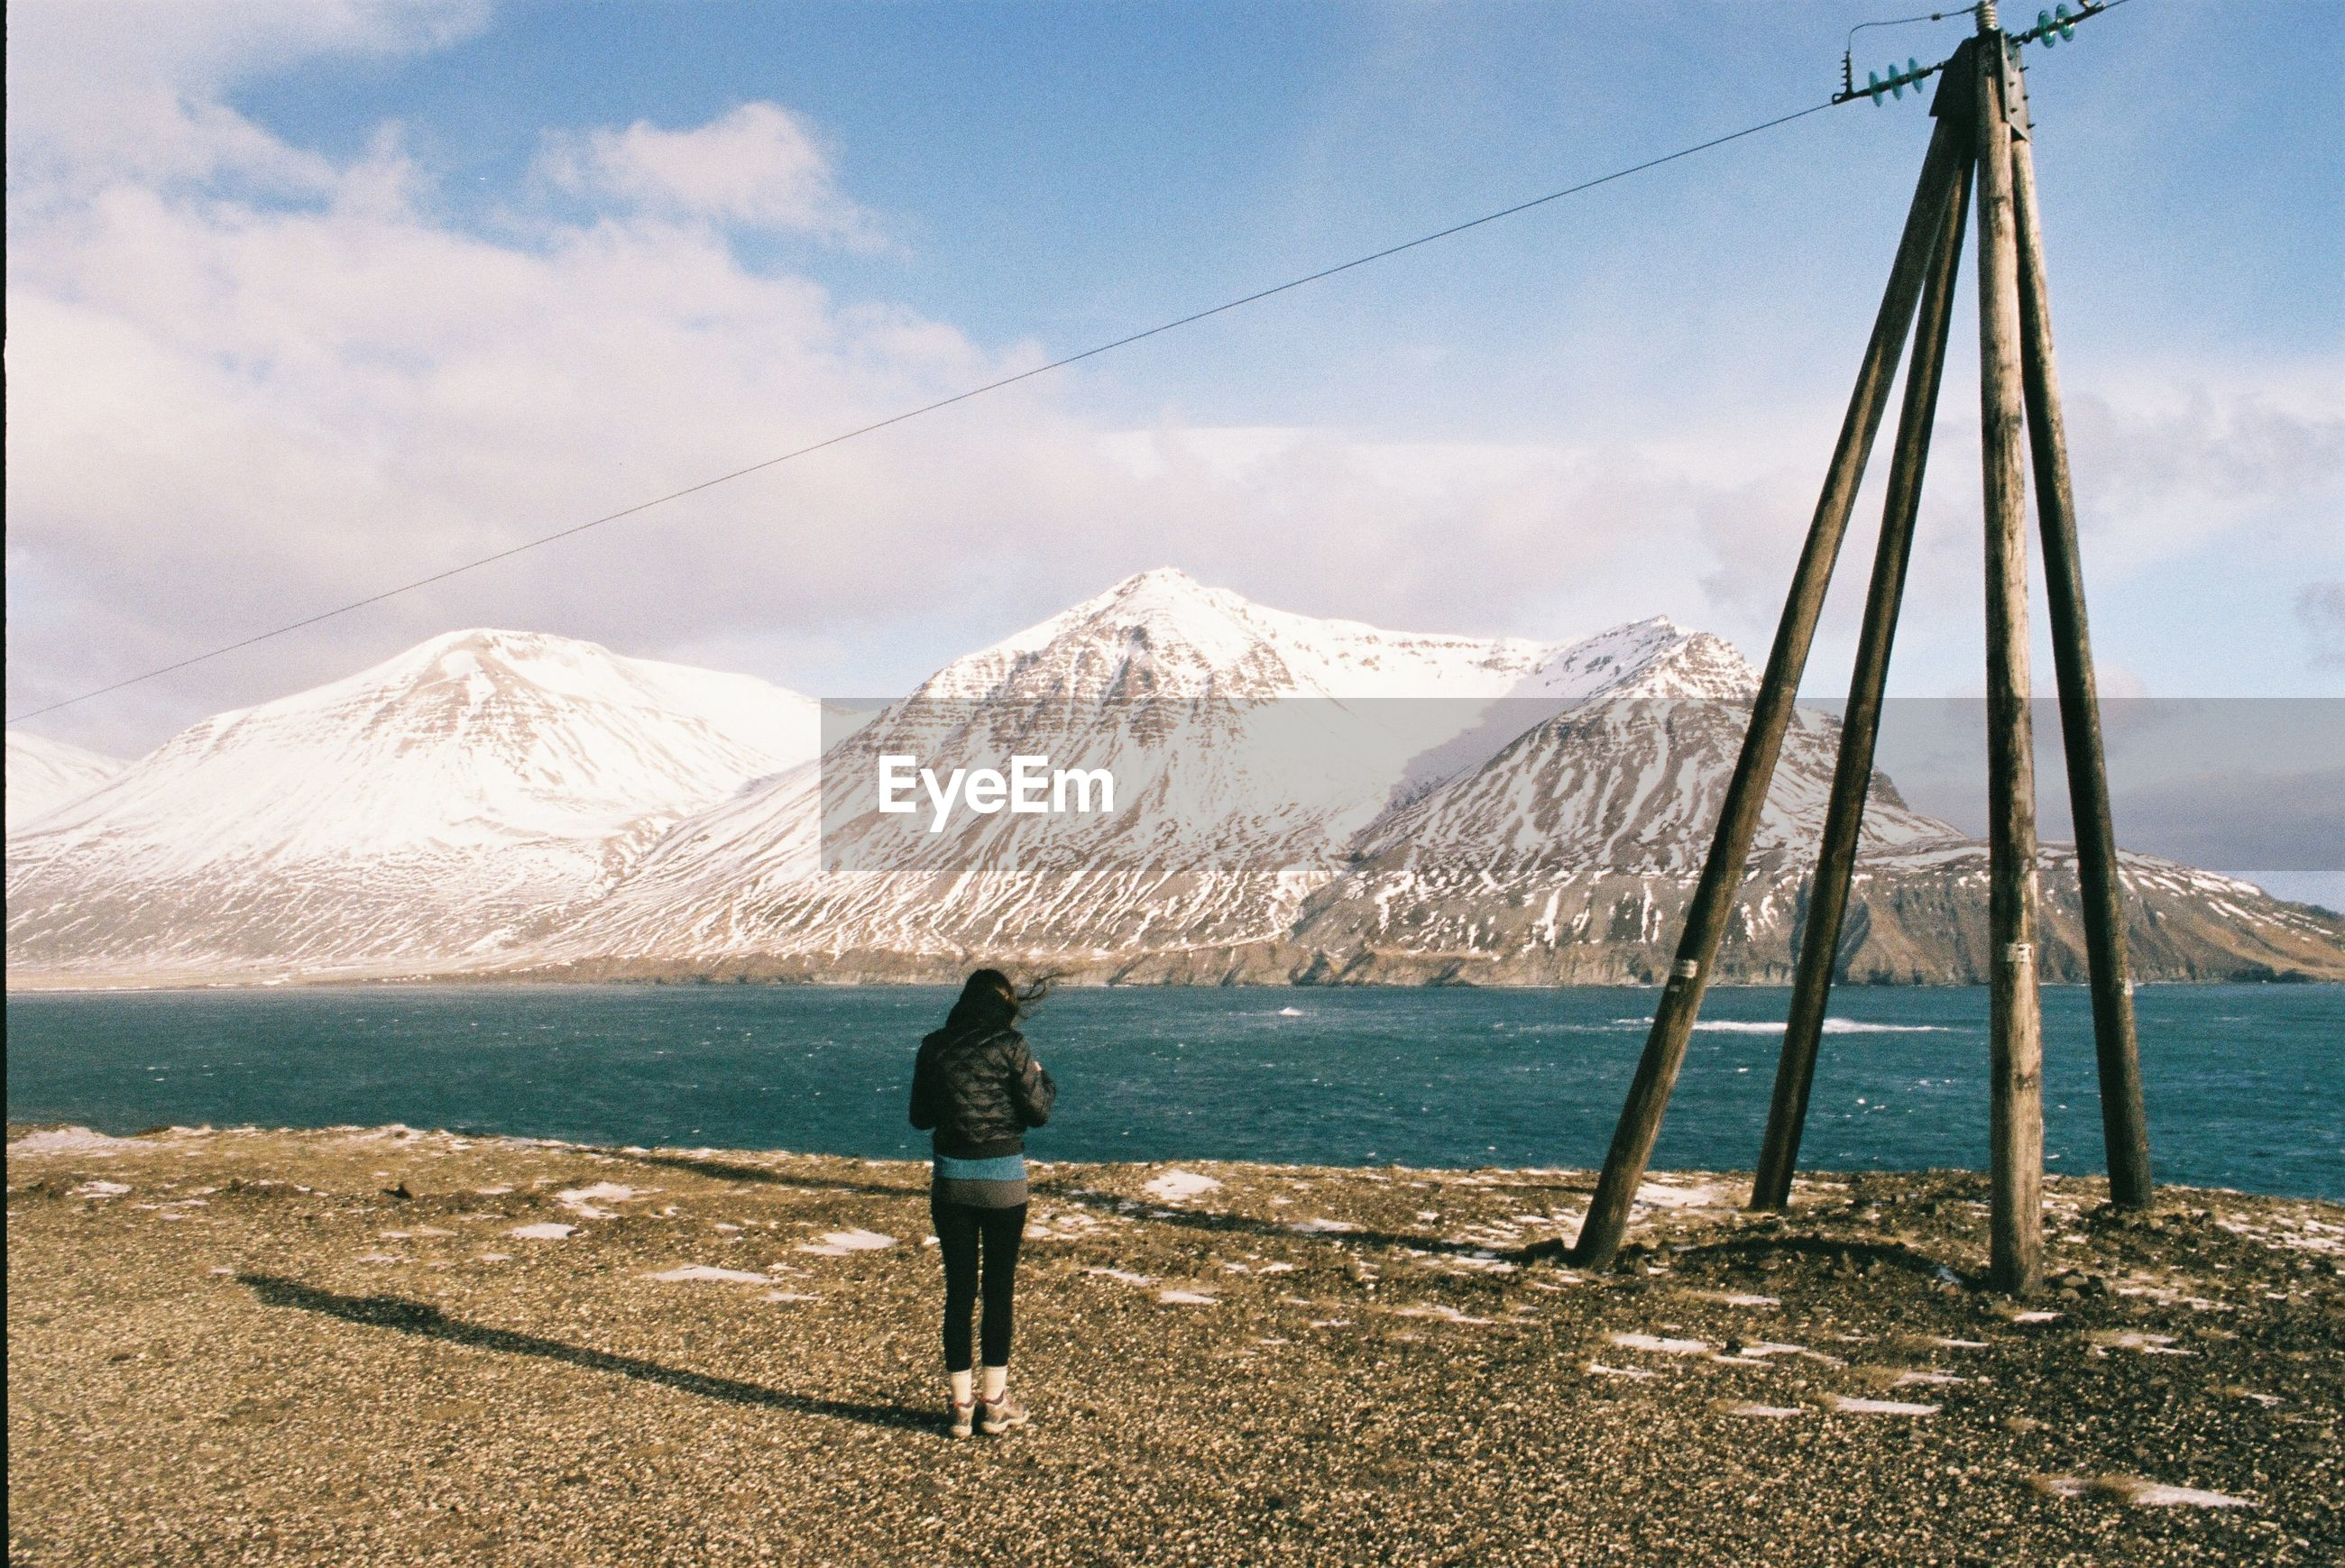 mountain, one person, cloud - sky, water, rear view, beauty in nature, scenics - nature, sky, real people, nature, day, leisure activity, standing, full length, lifestyles, mountain range, non-urban scene, land, snowcapped mountain, outdoors